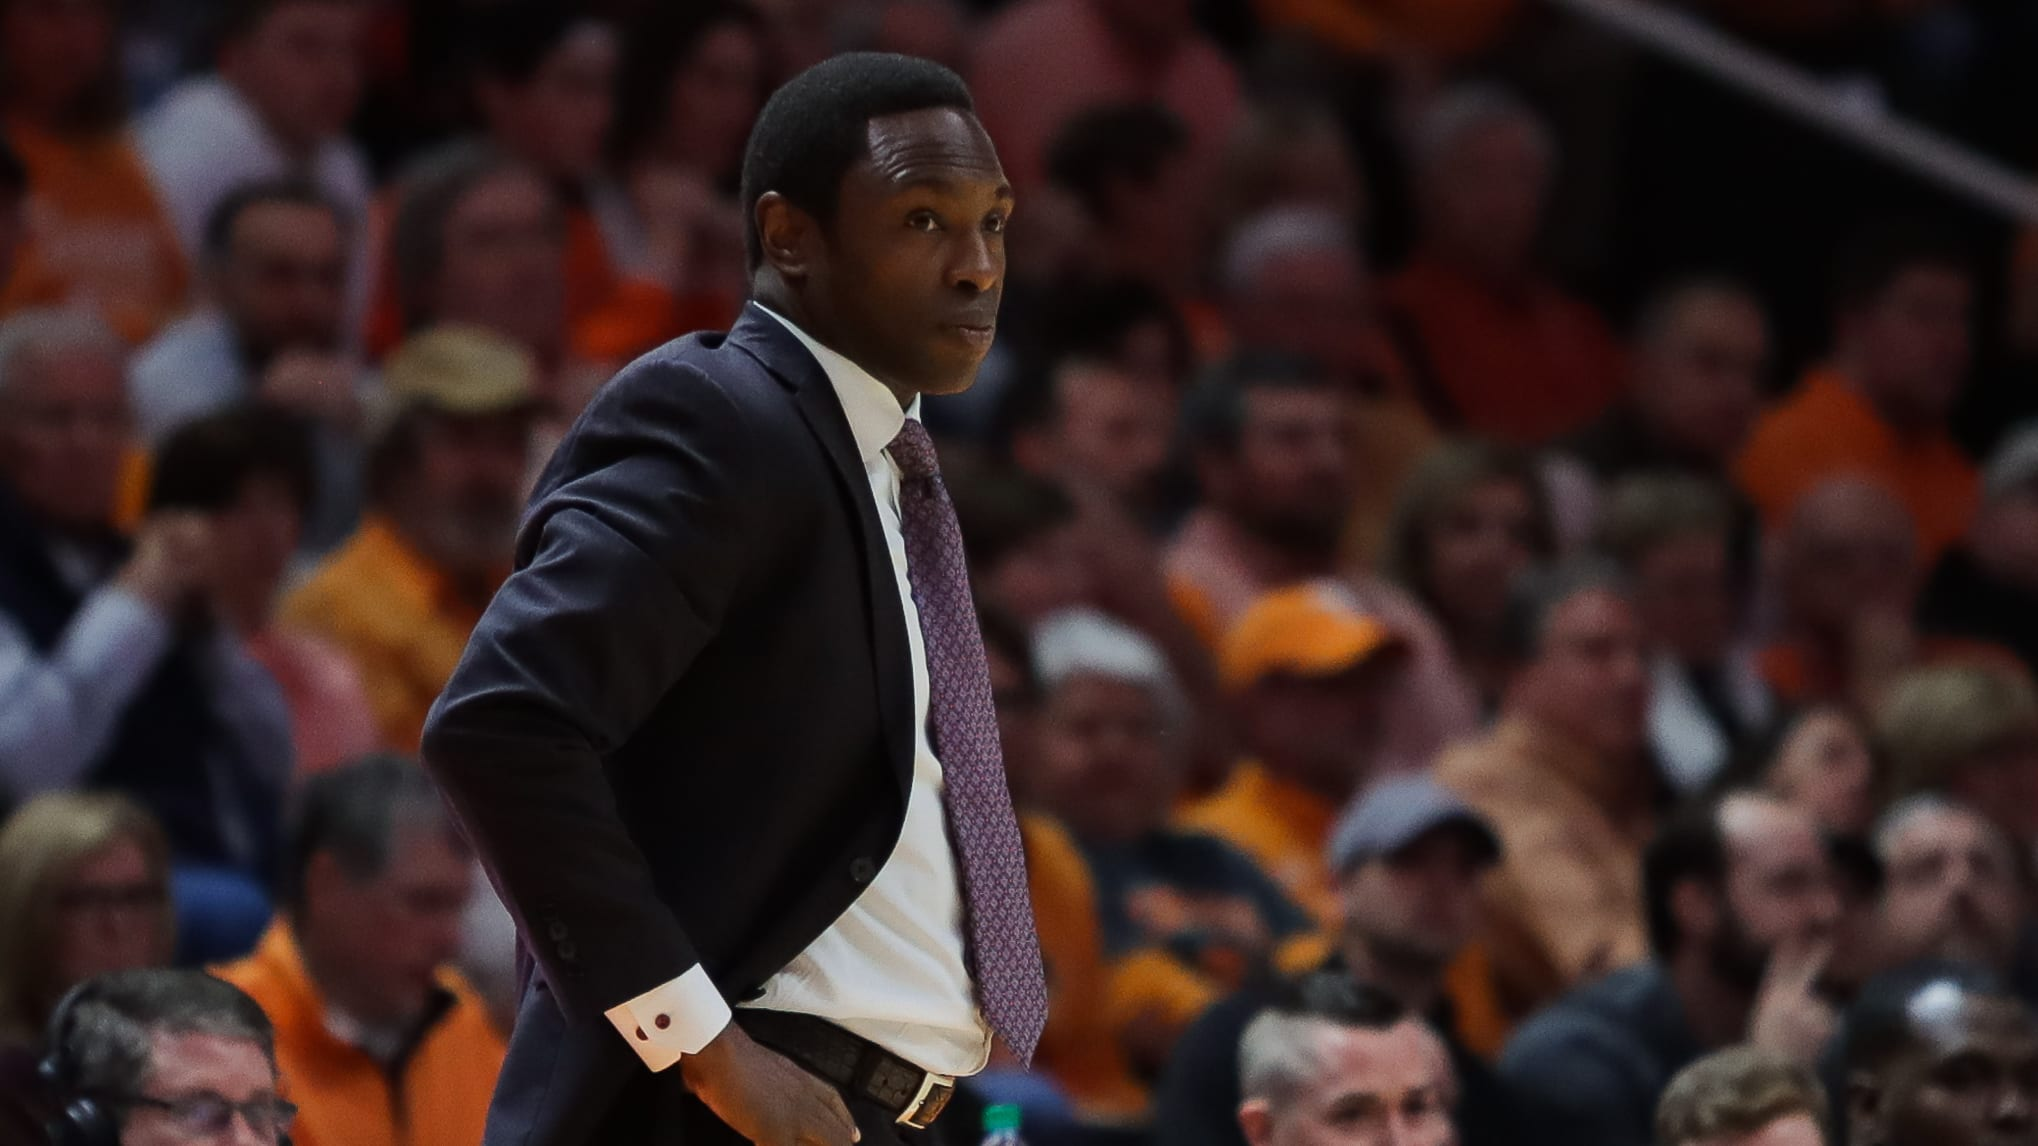 KNOXVILLE, TN - JANUARY 19: Head coach Avery Johnson of the Alabama Crimson Tide looks on during the first half of the game between the Alabama Crimson Tide and the Tennessee Volunteers at Thompson-Boling Arena on January 19, 2019 in Knoxville, Tennessee. (Photo by Donald Page/Getty Images)